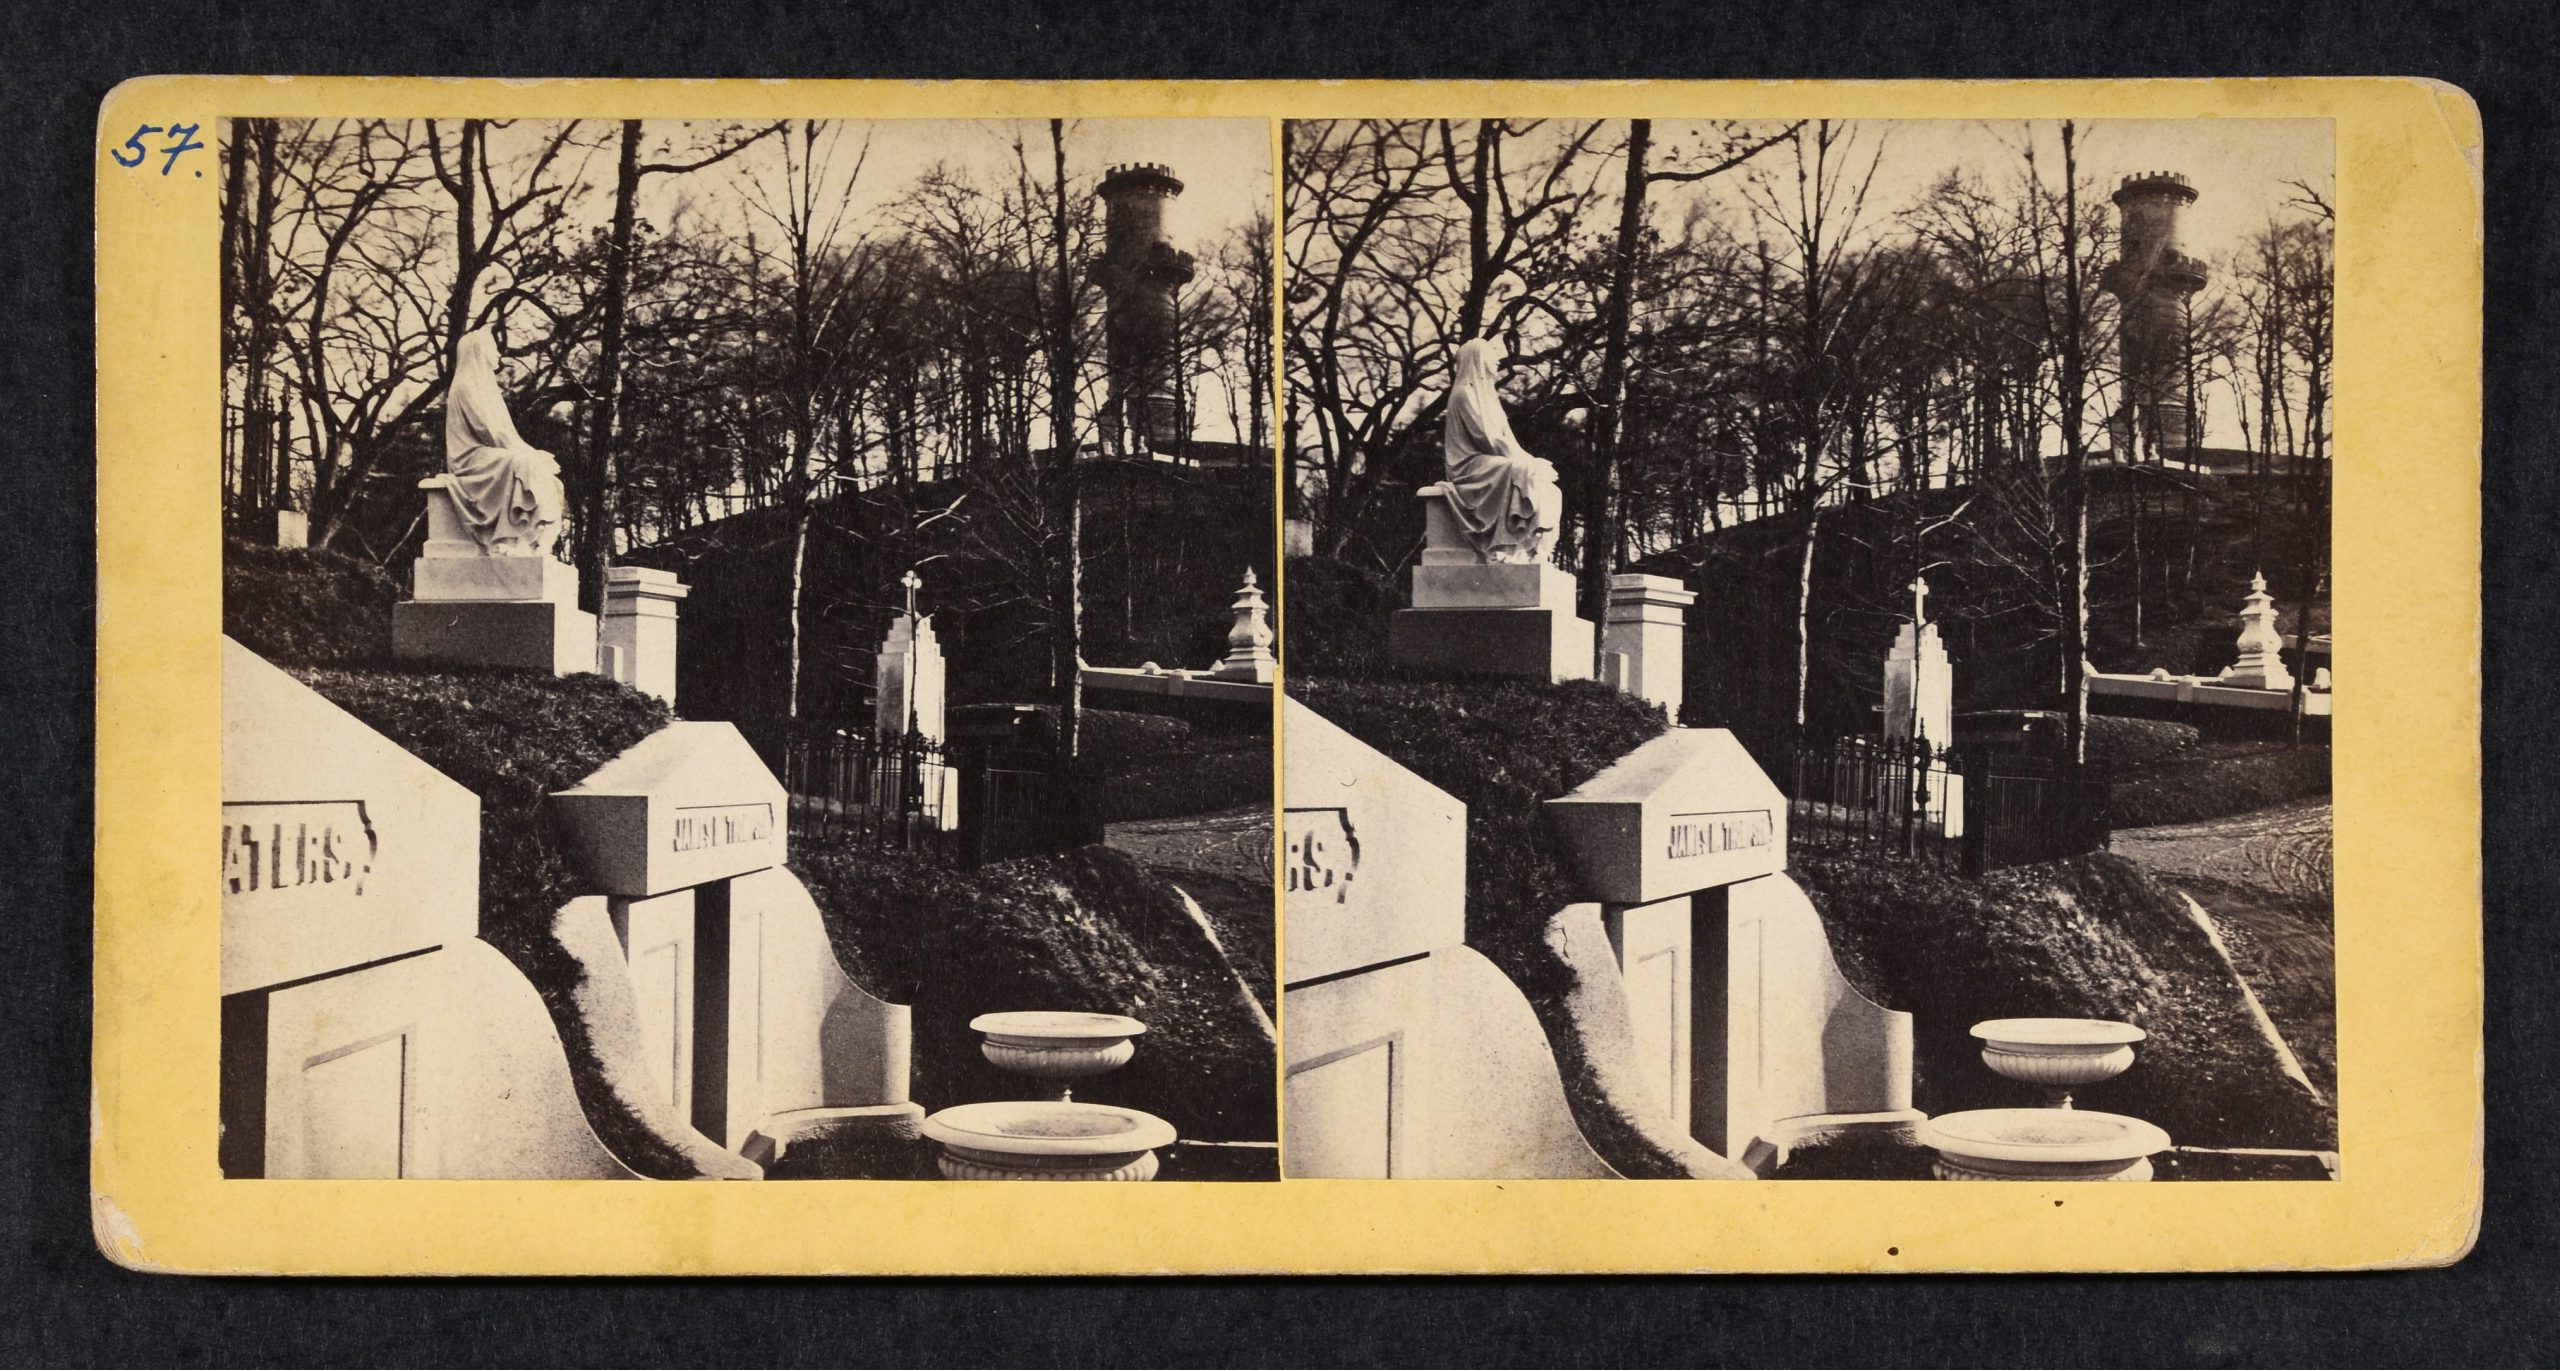 Stereoview of hillside tombs, monuments, trees, large tower in background.